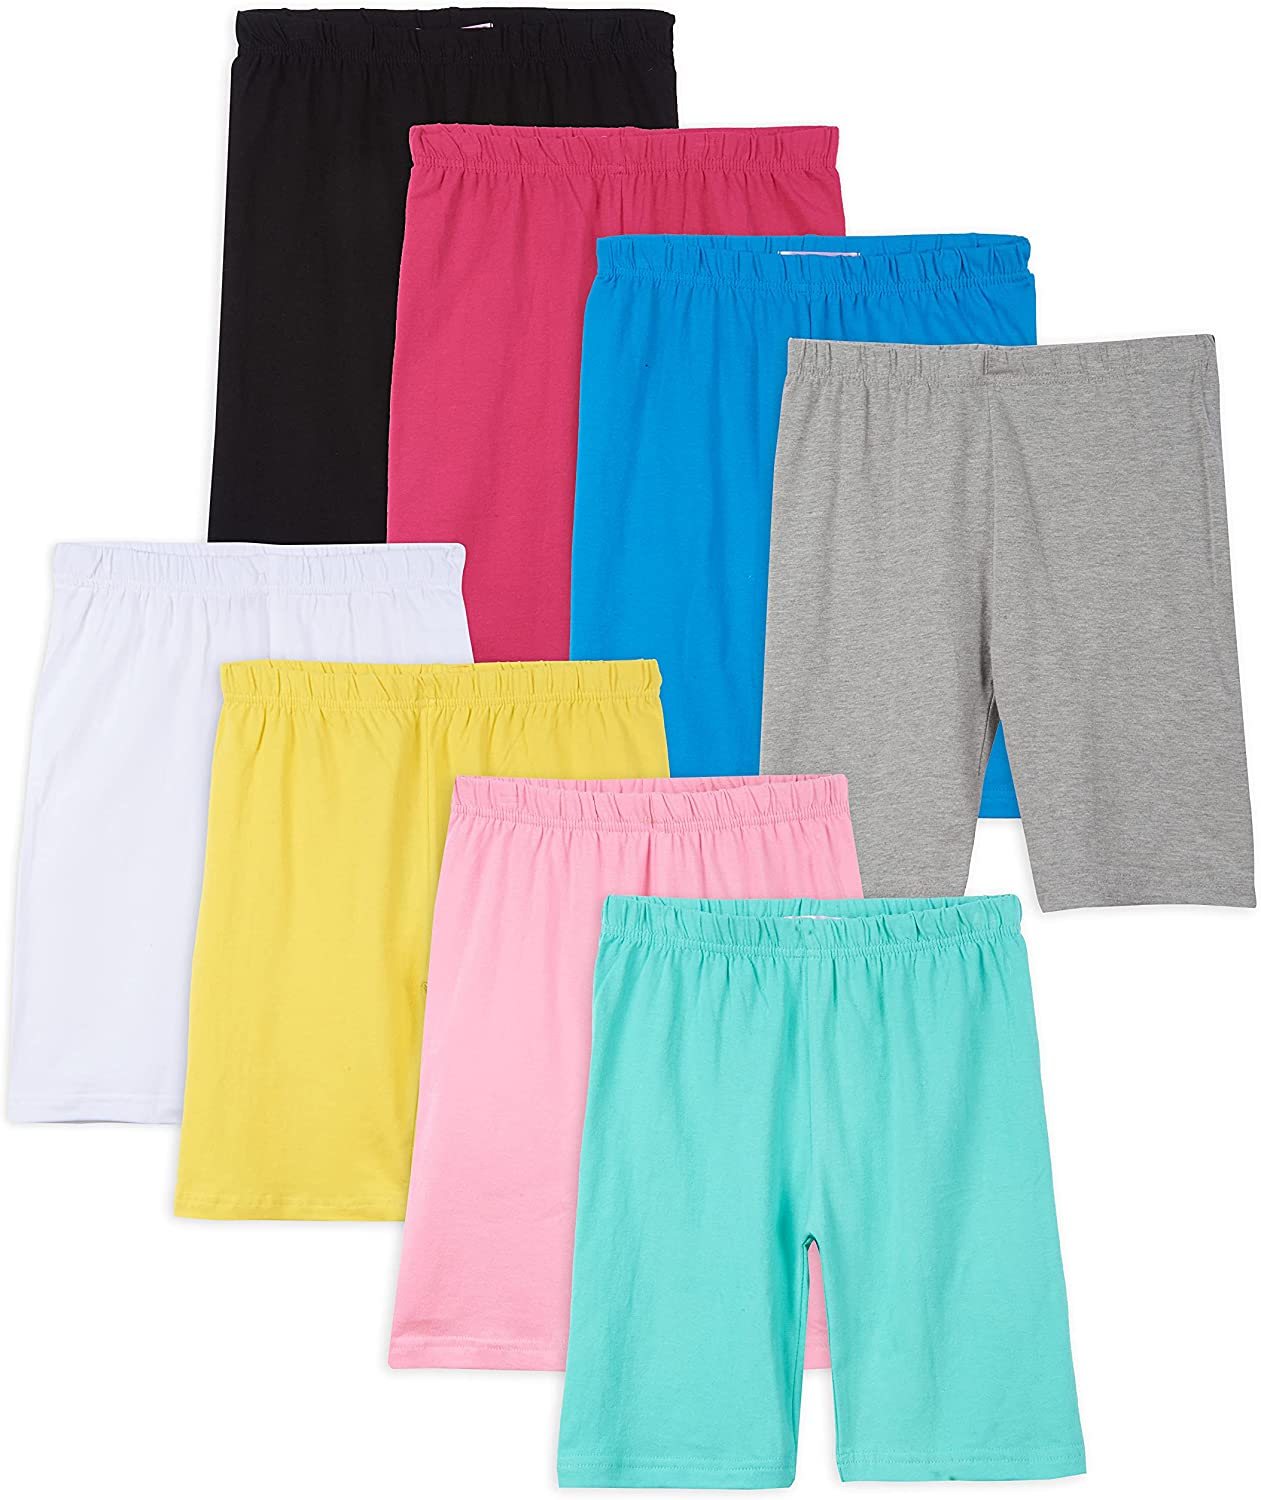 Pink Angel Price reduction Kids Girls Cotton Spandex Plain Bike Outlet sale feature Solid Sp Shorts